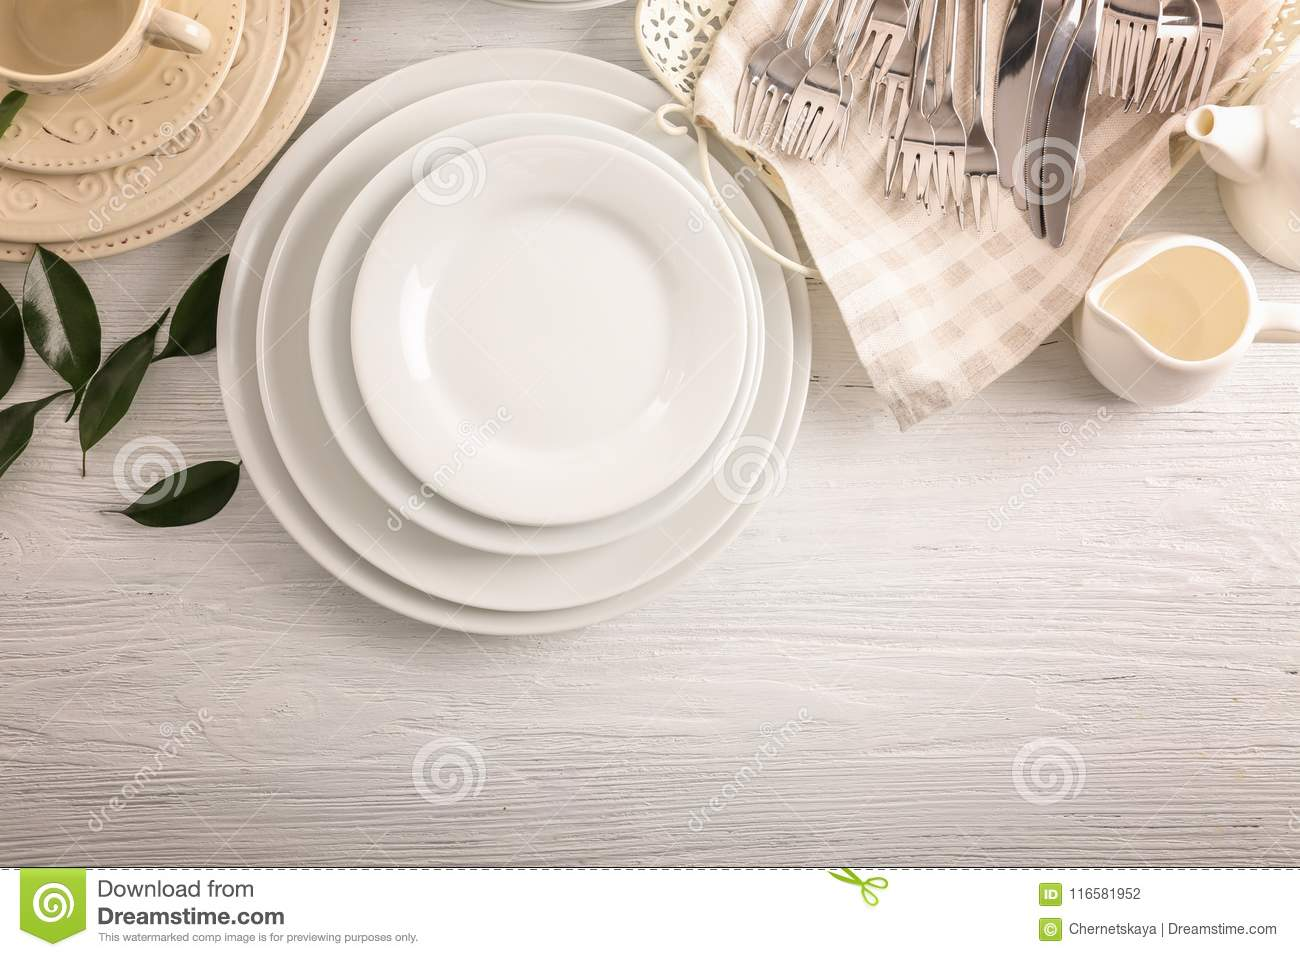 White dishes on table